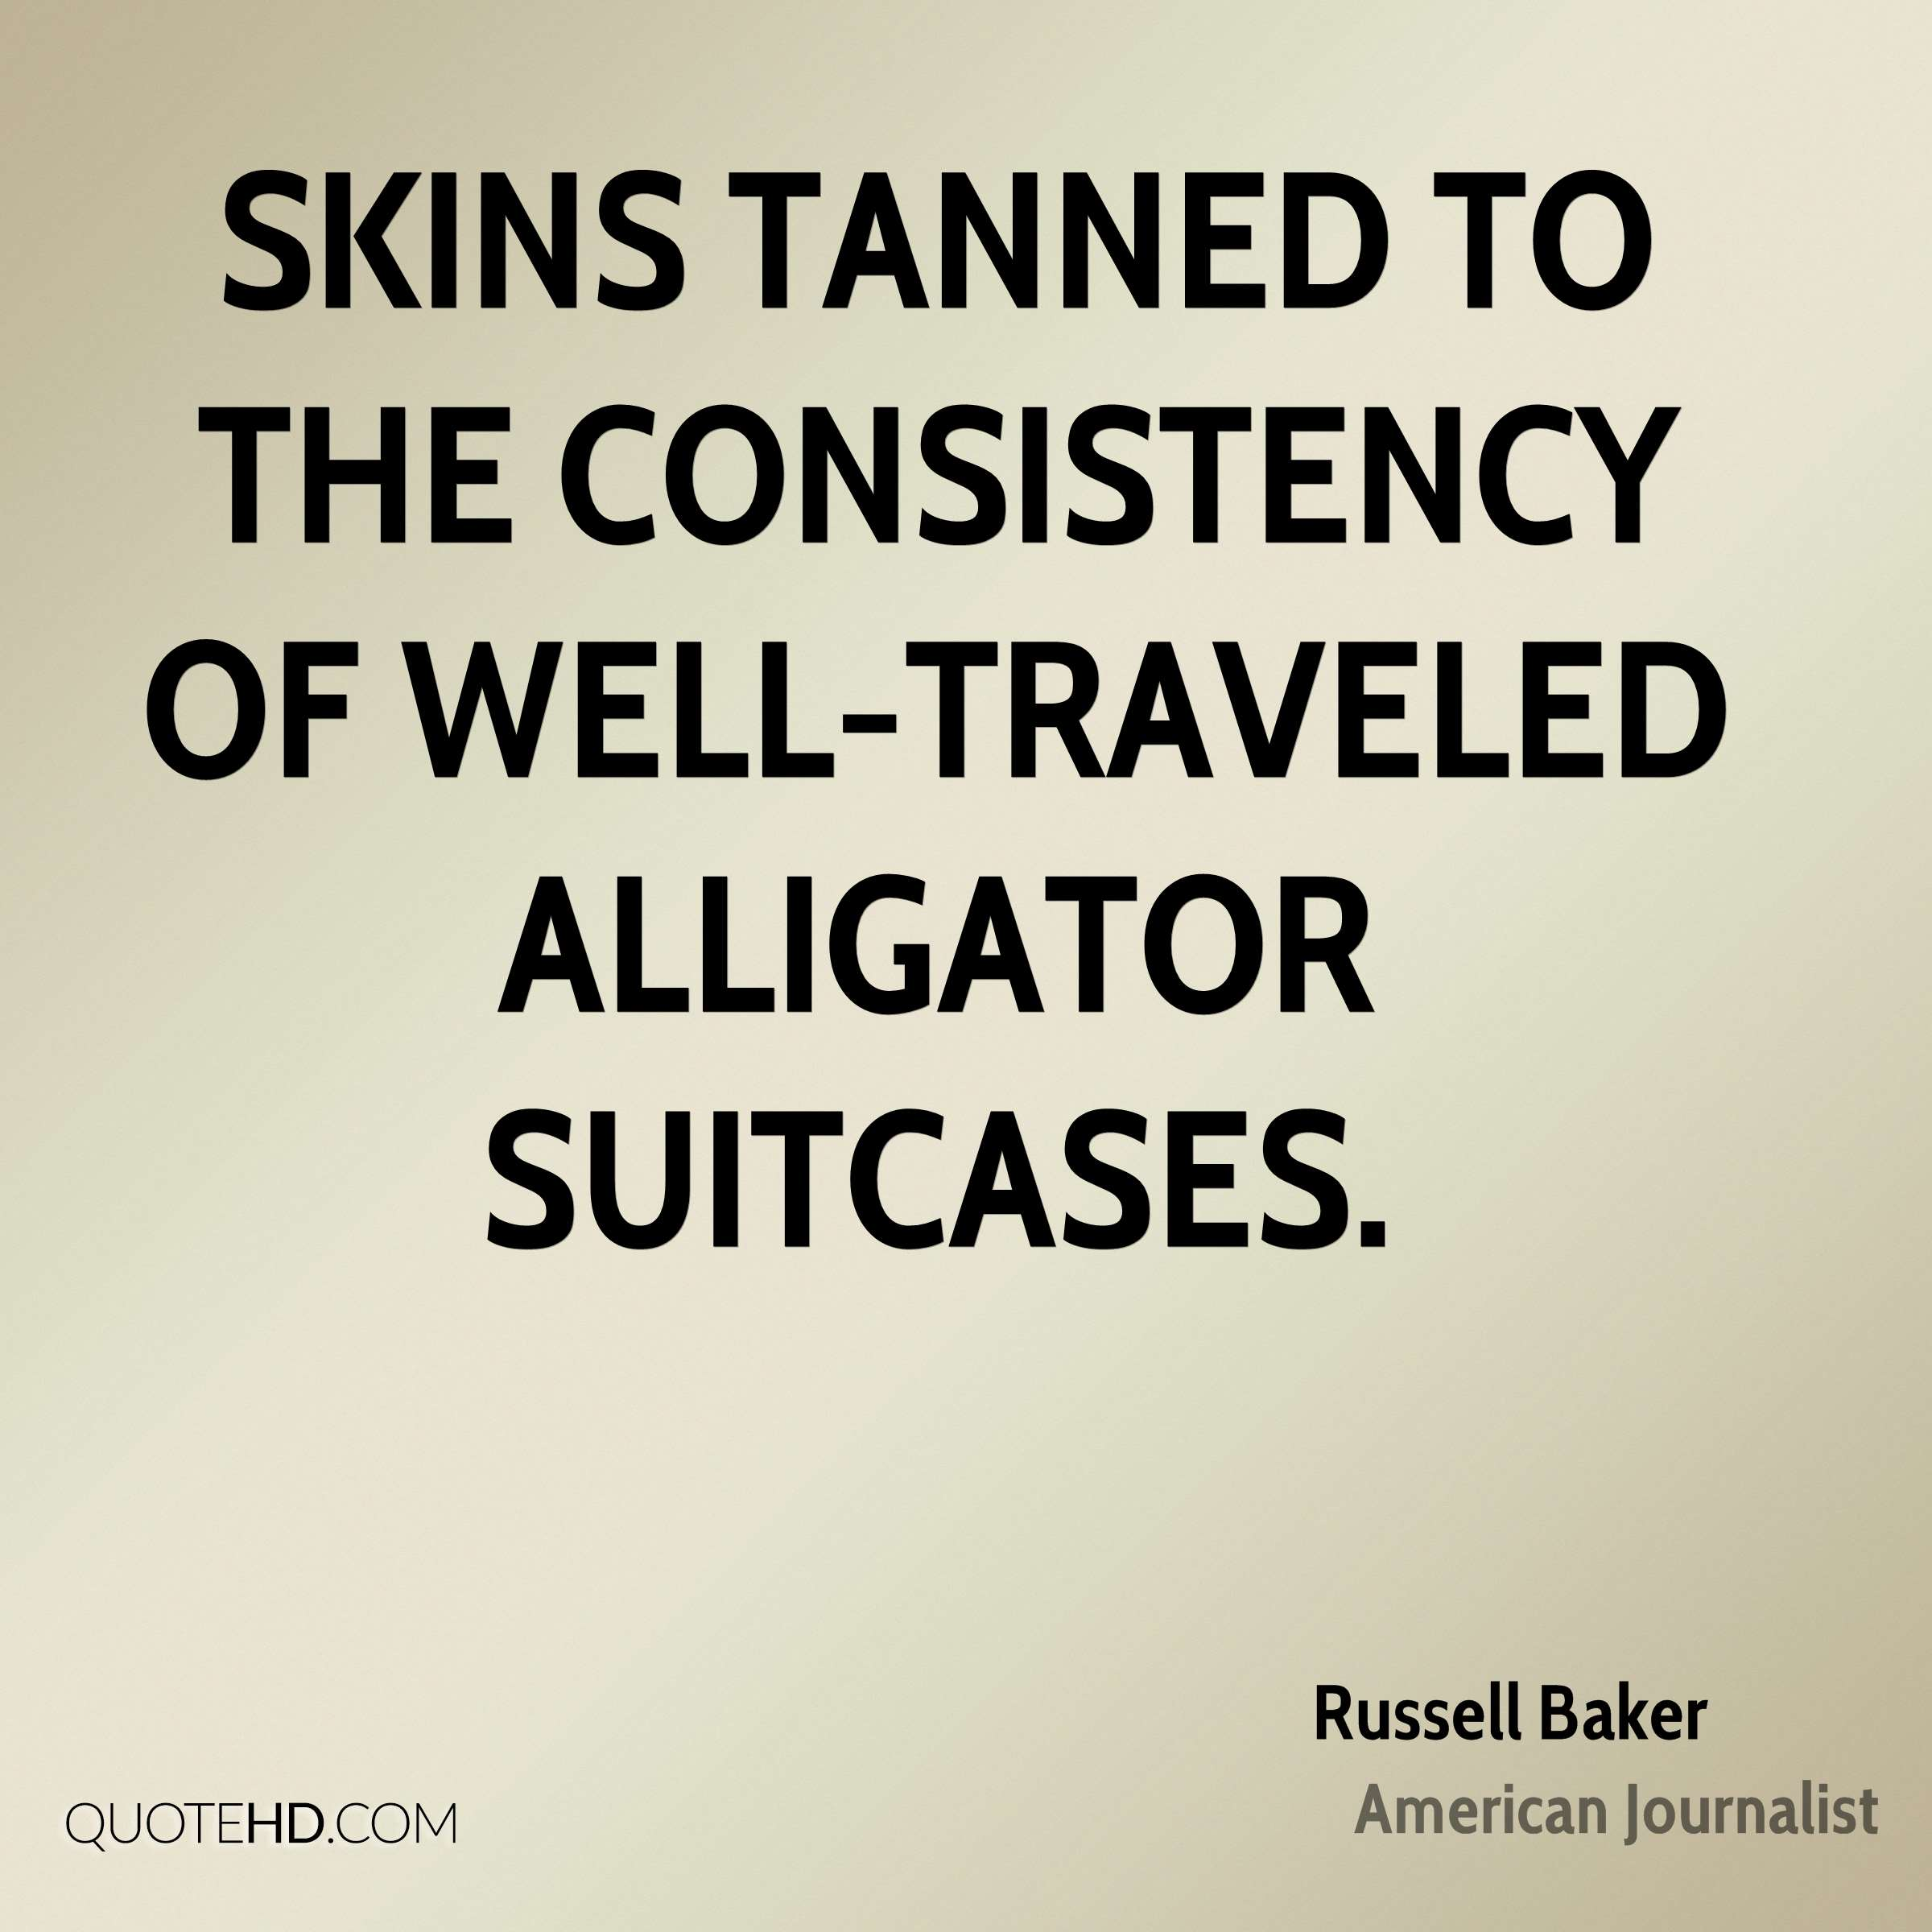 Skins tanned to the consistency of well-traveled alligator suitcases.